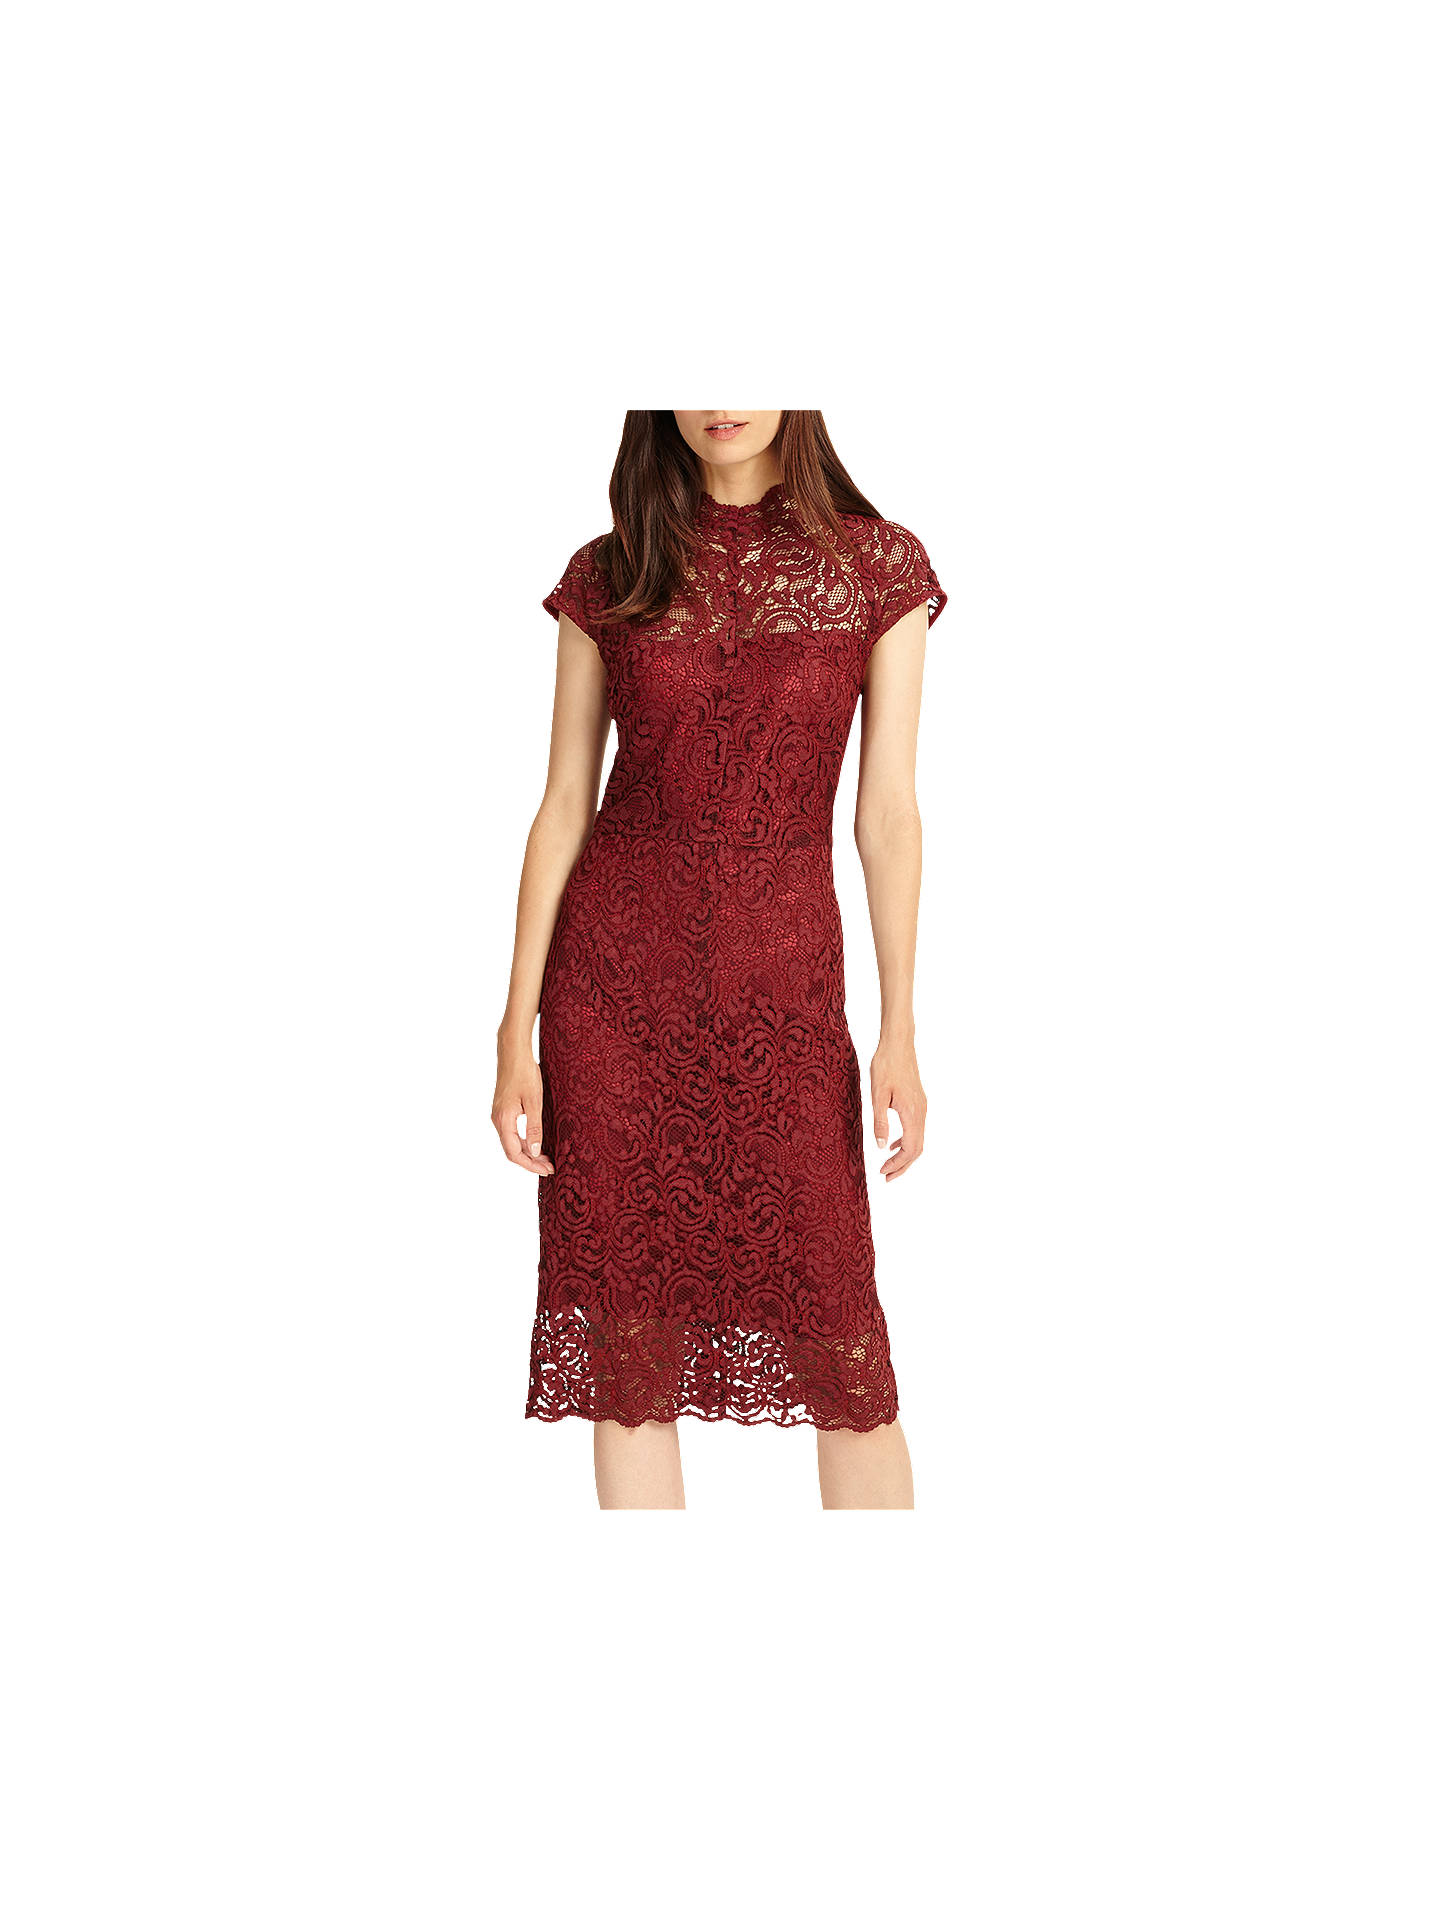 b538cee6f0022 Phase Eight Becky Lace Dress, Claret at John Lewis & Partners